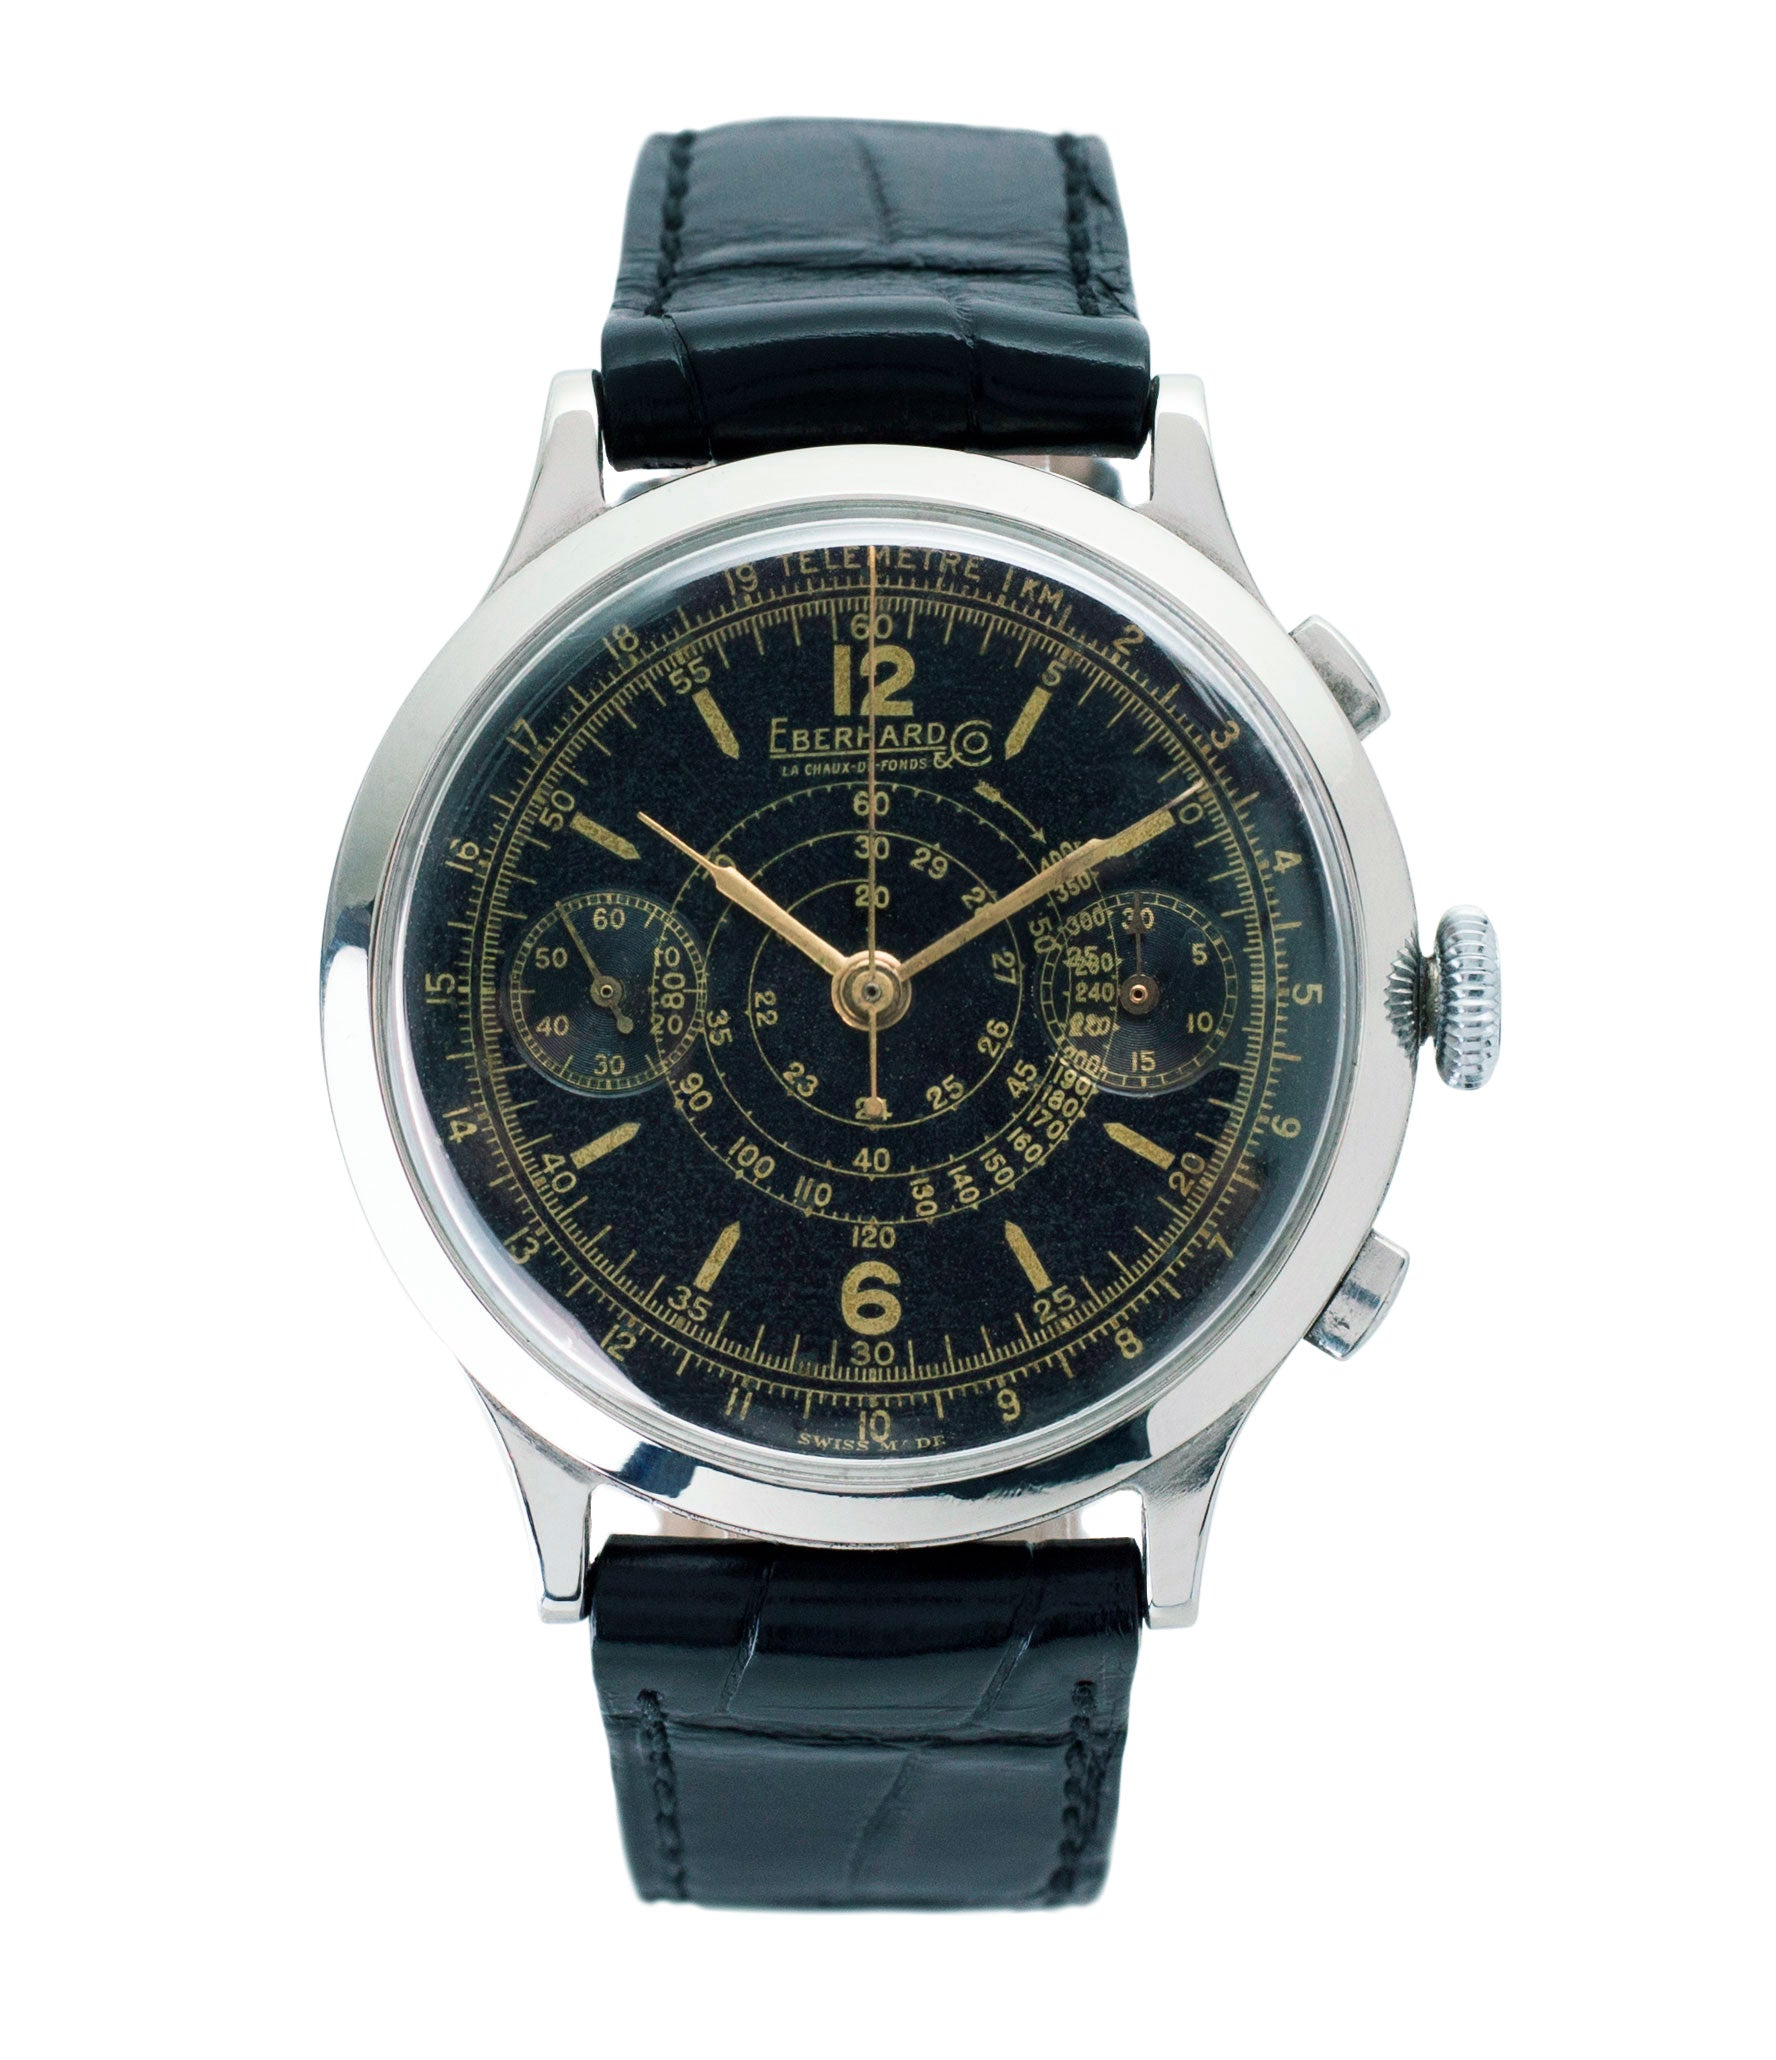 buy Eberhard pre Extra-Fort Chronograph steel black dial vintage watch for sale online at A Collected Man London UK vintage rare watch specialist